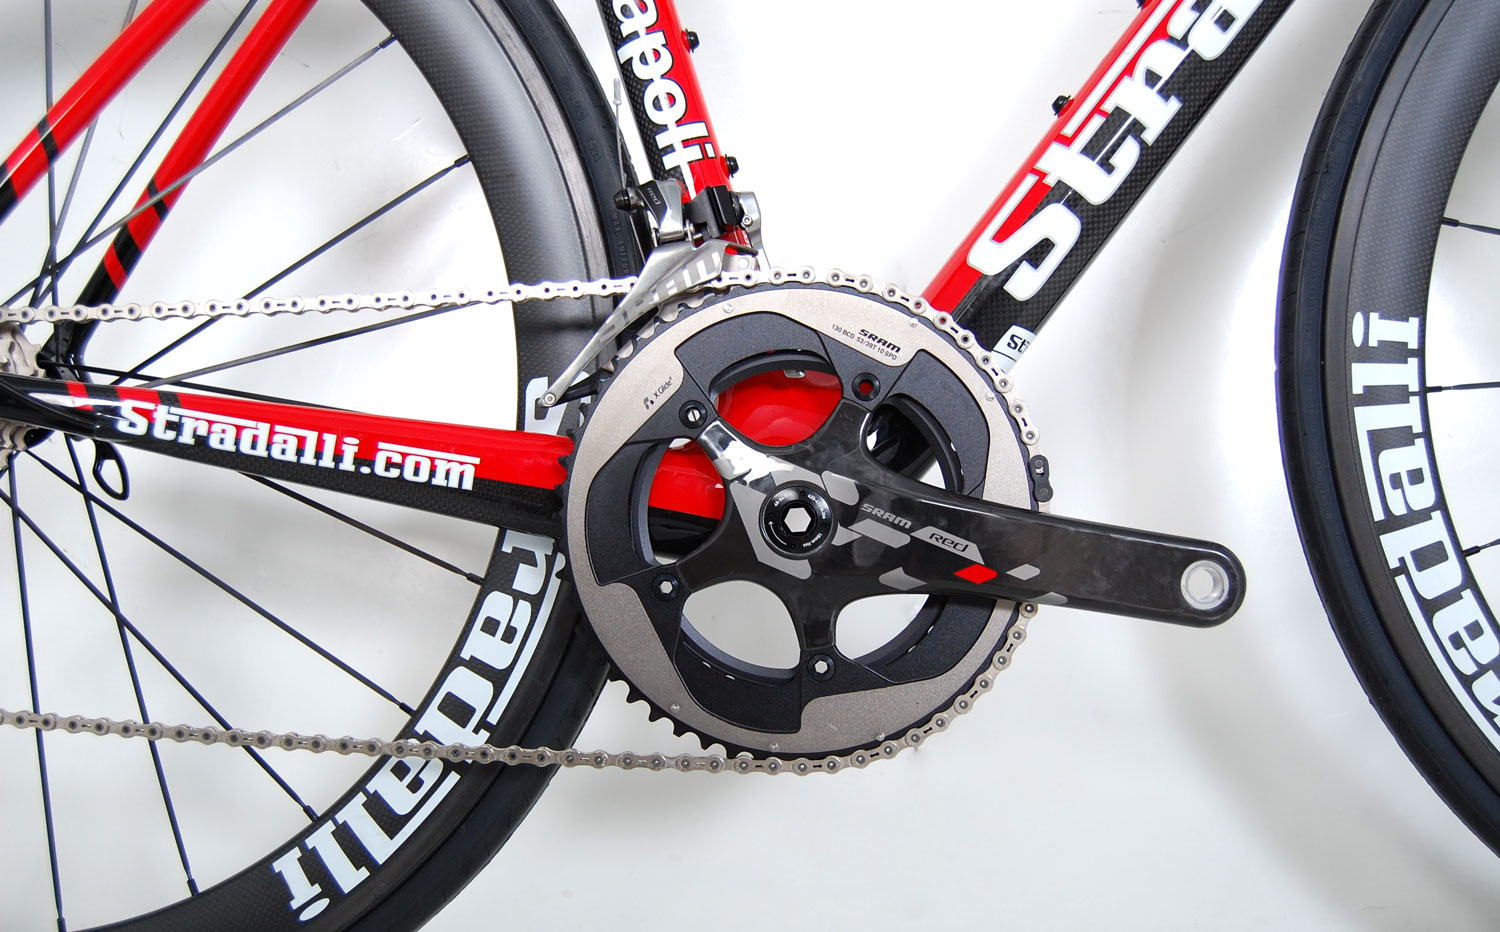 NAPOLI NEW SRAM RED FULL CARBON ROAD RACE BICYCLE WHEELS BB30 S